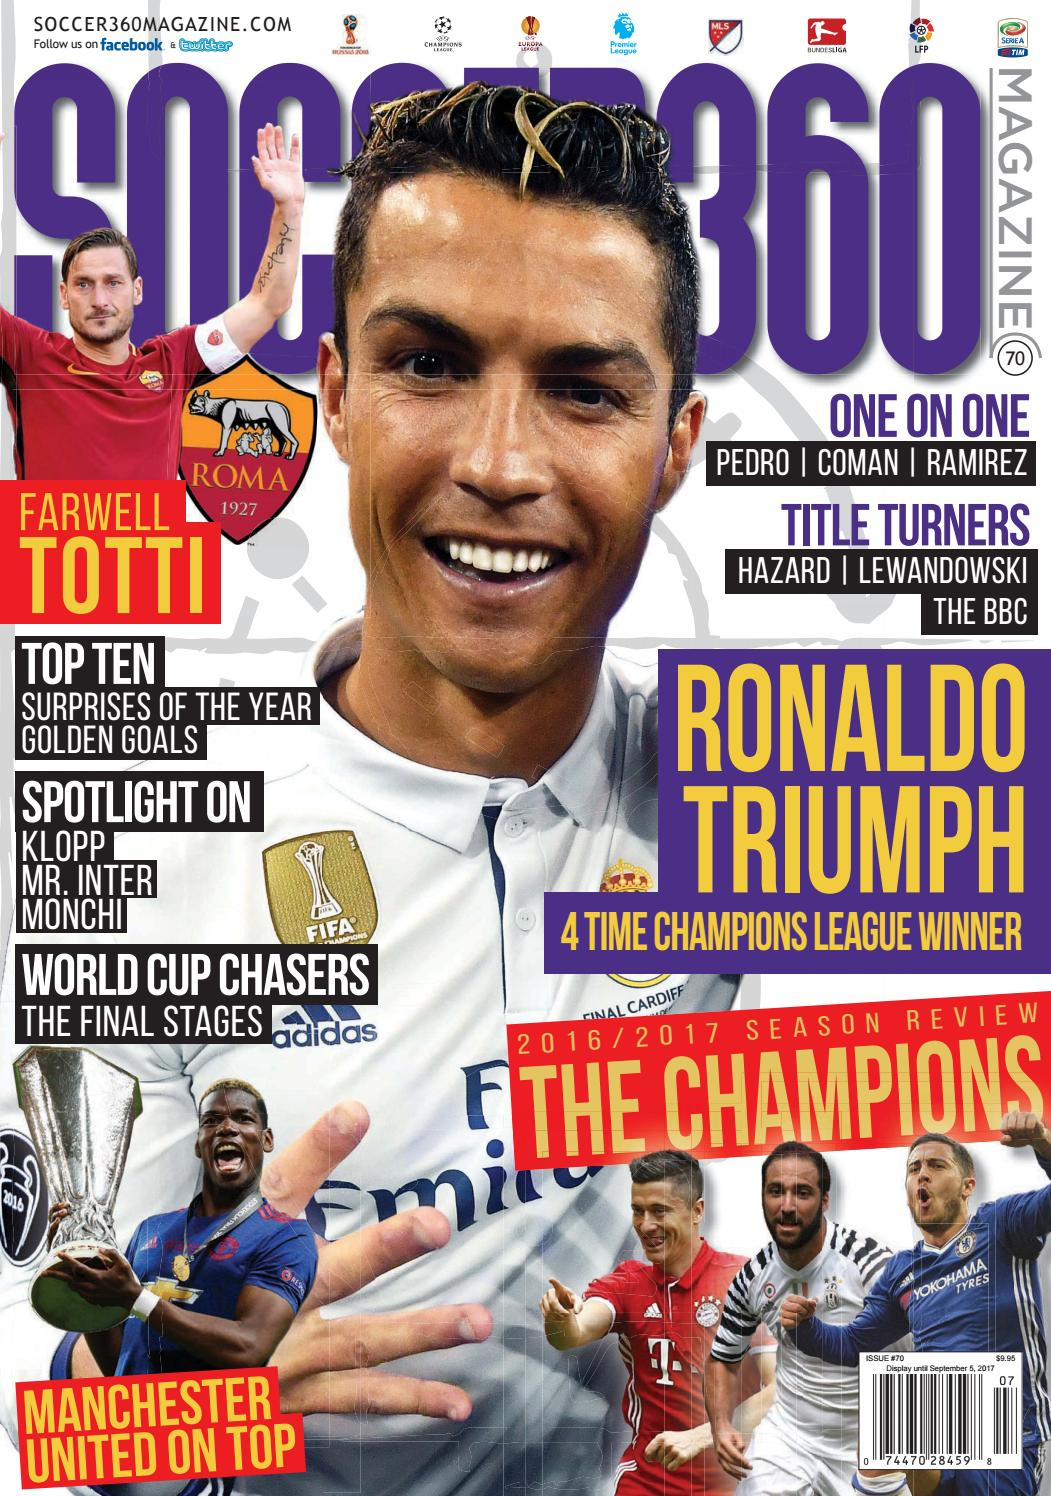 Soccer 360 Magazine Issue 70 July August 2017 By Soccer 360 Magazine Issuu